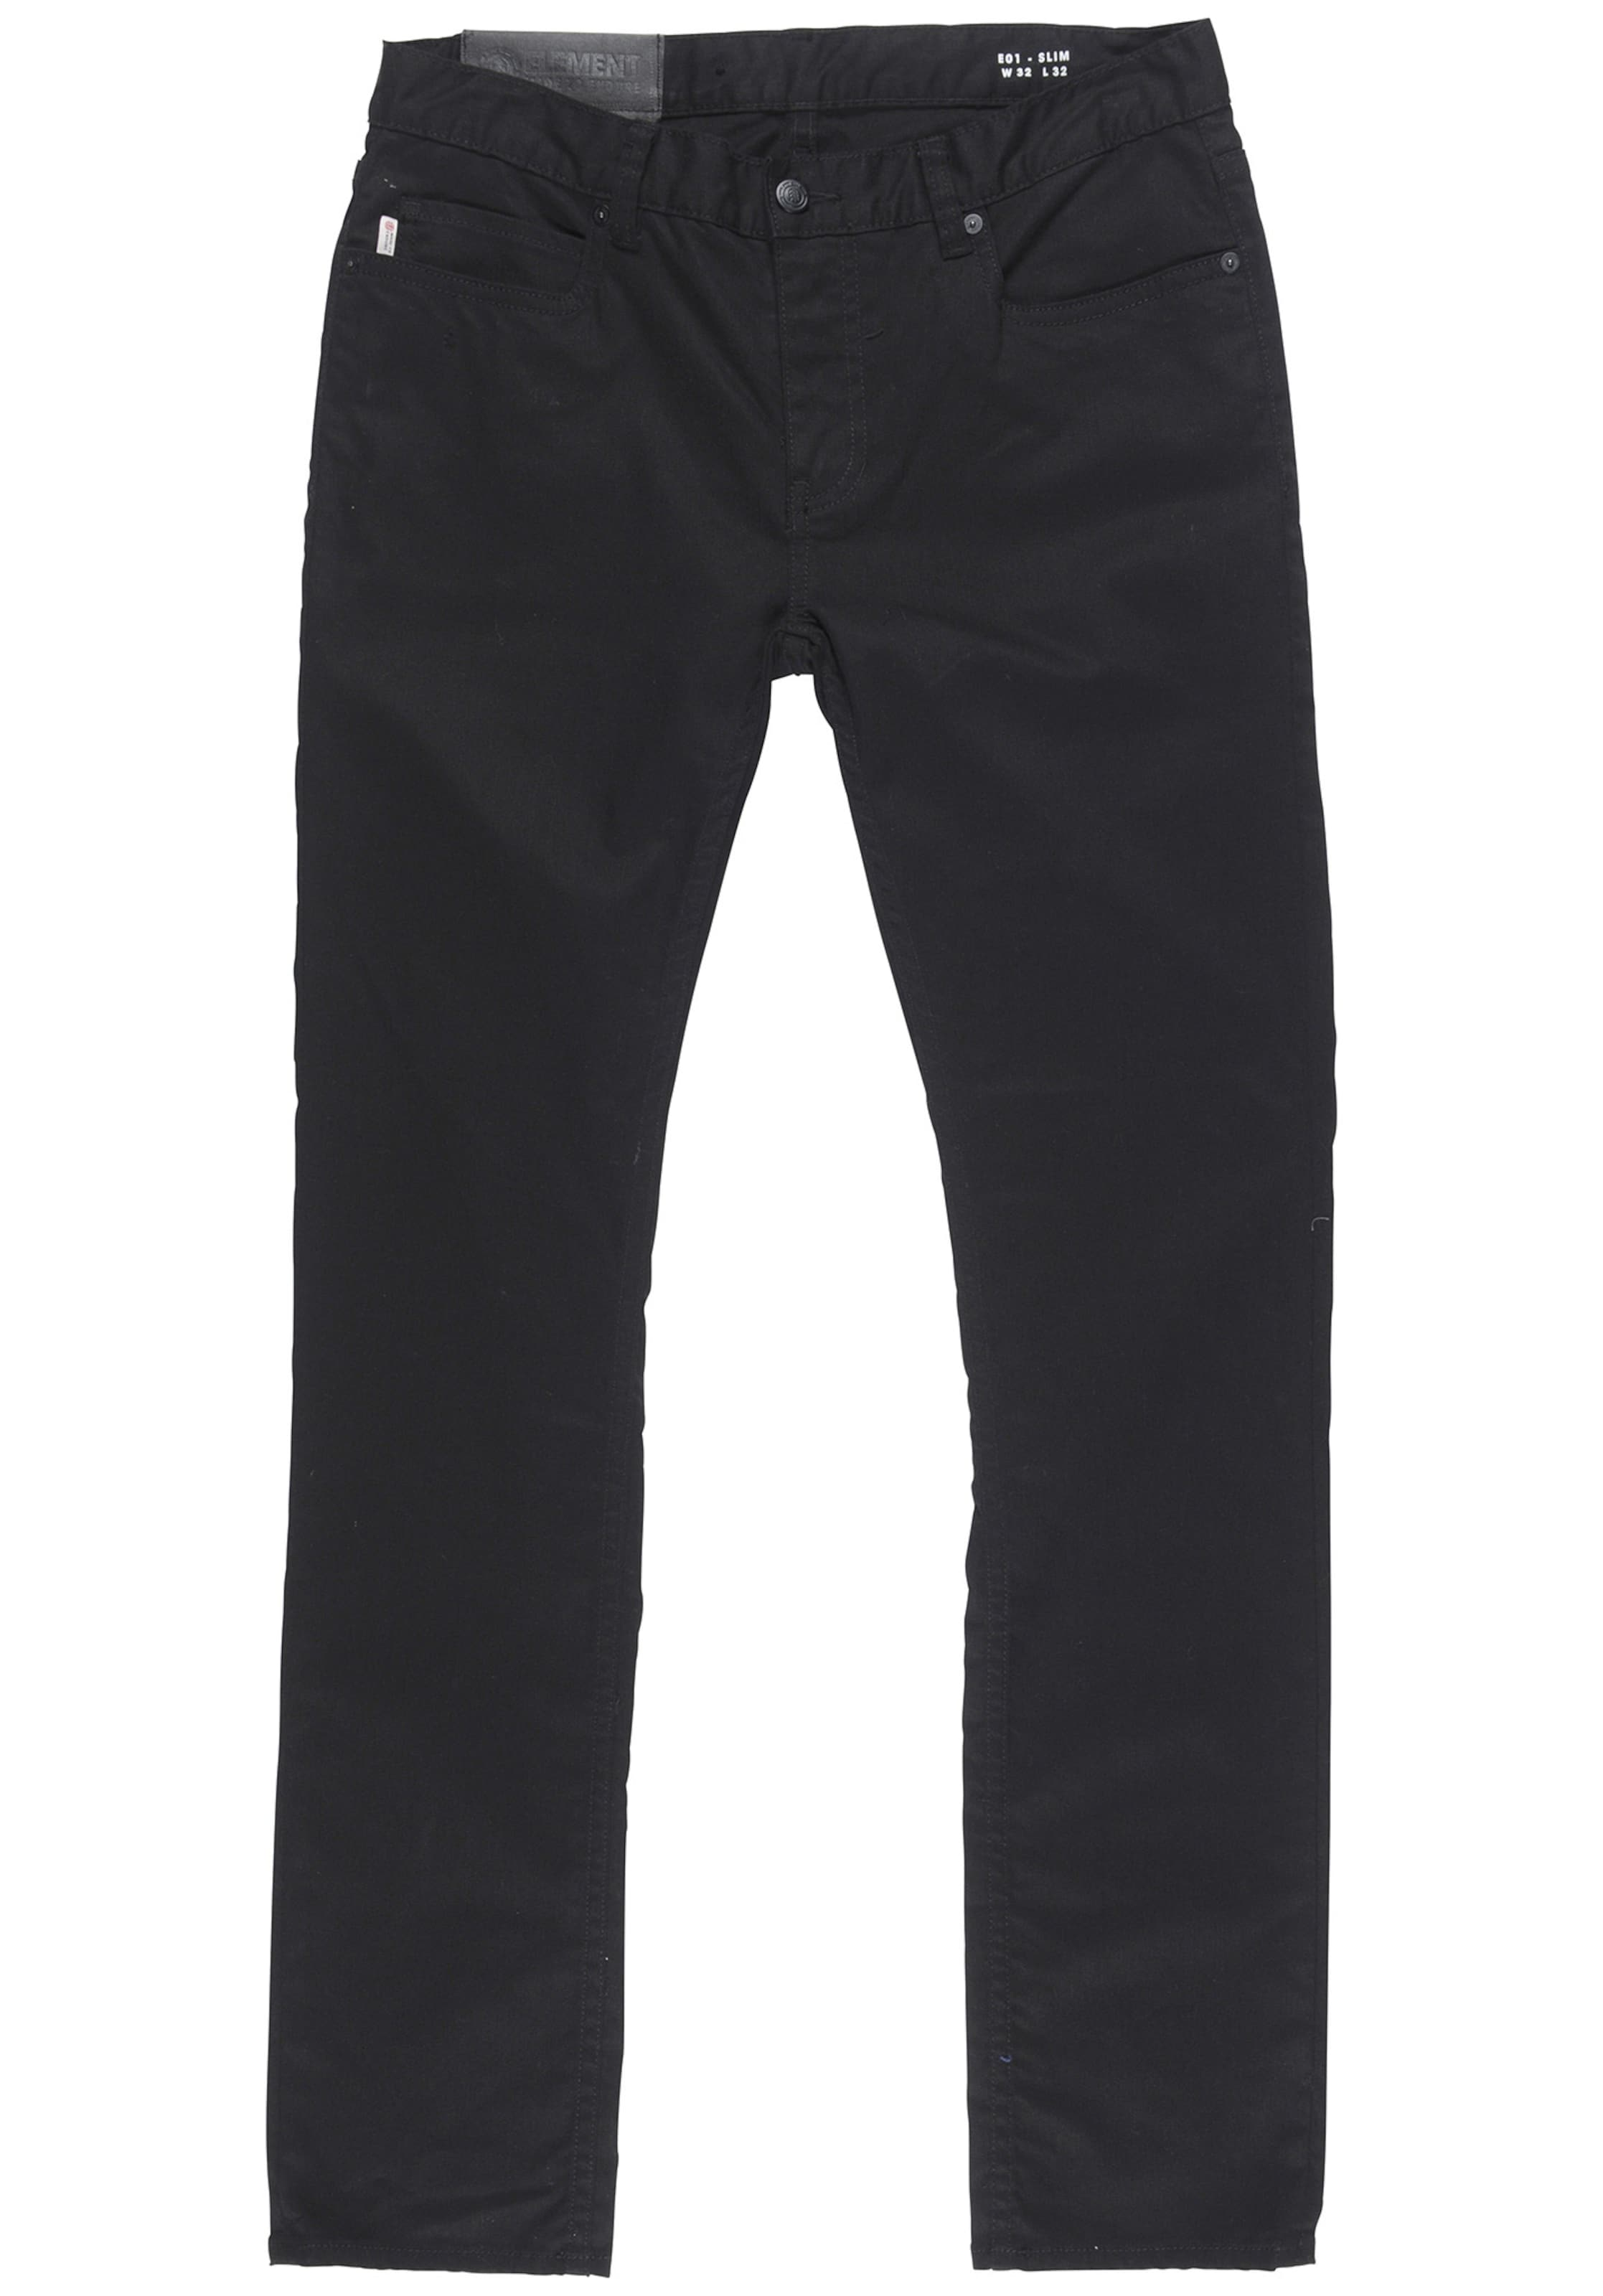 Color' Element 'e01 In Schwarz Jeans 2HDEIY9W